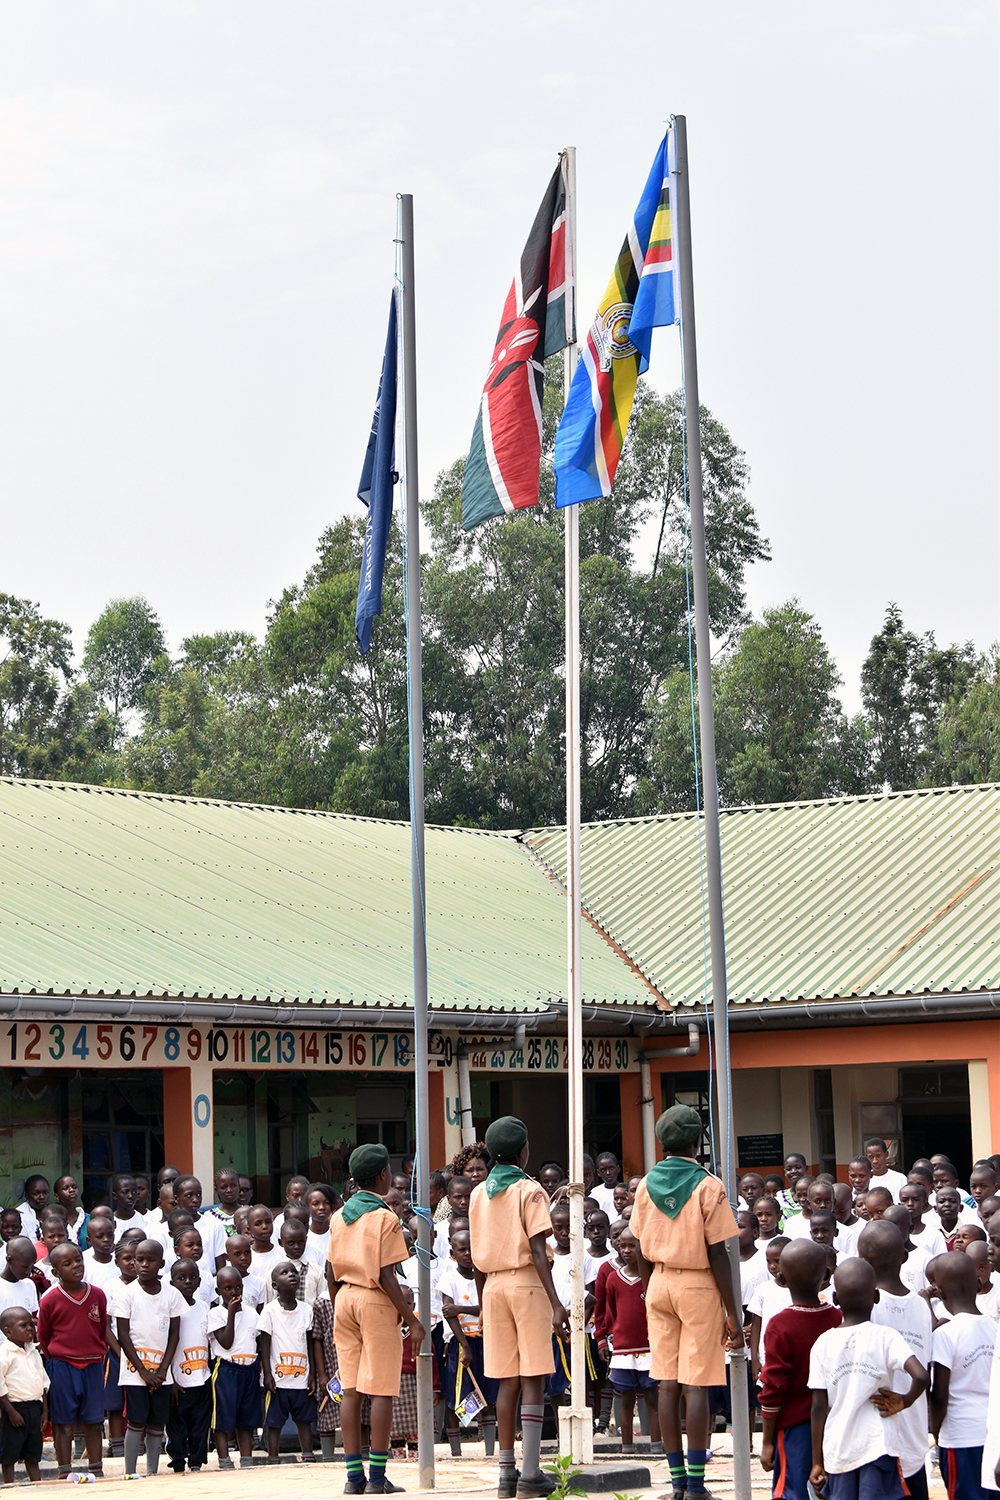 About Nambale Magnet School